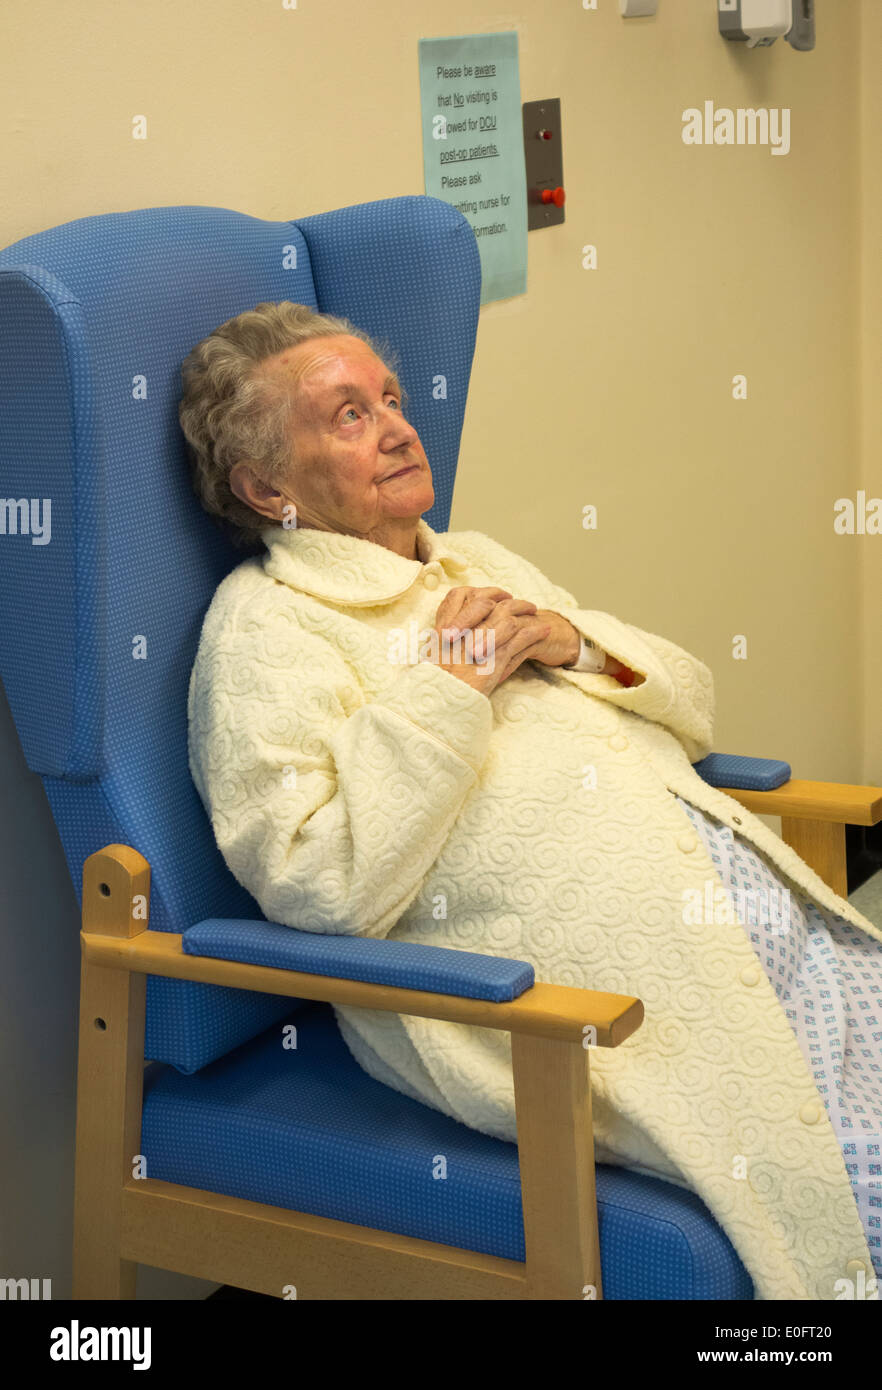 Elderly lady in her nineties in Hospital day care unit examination room being prepared for general anaesthetic. - Stock Image